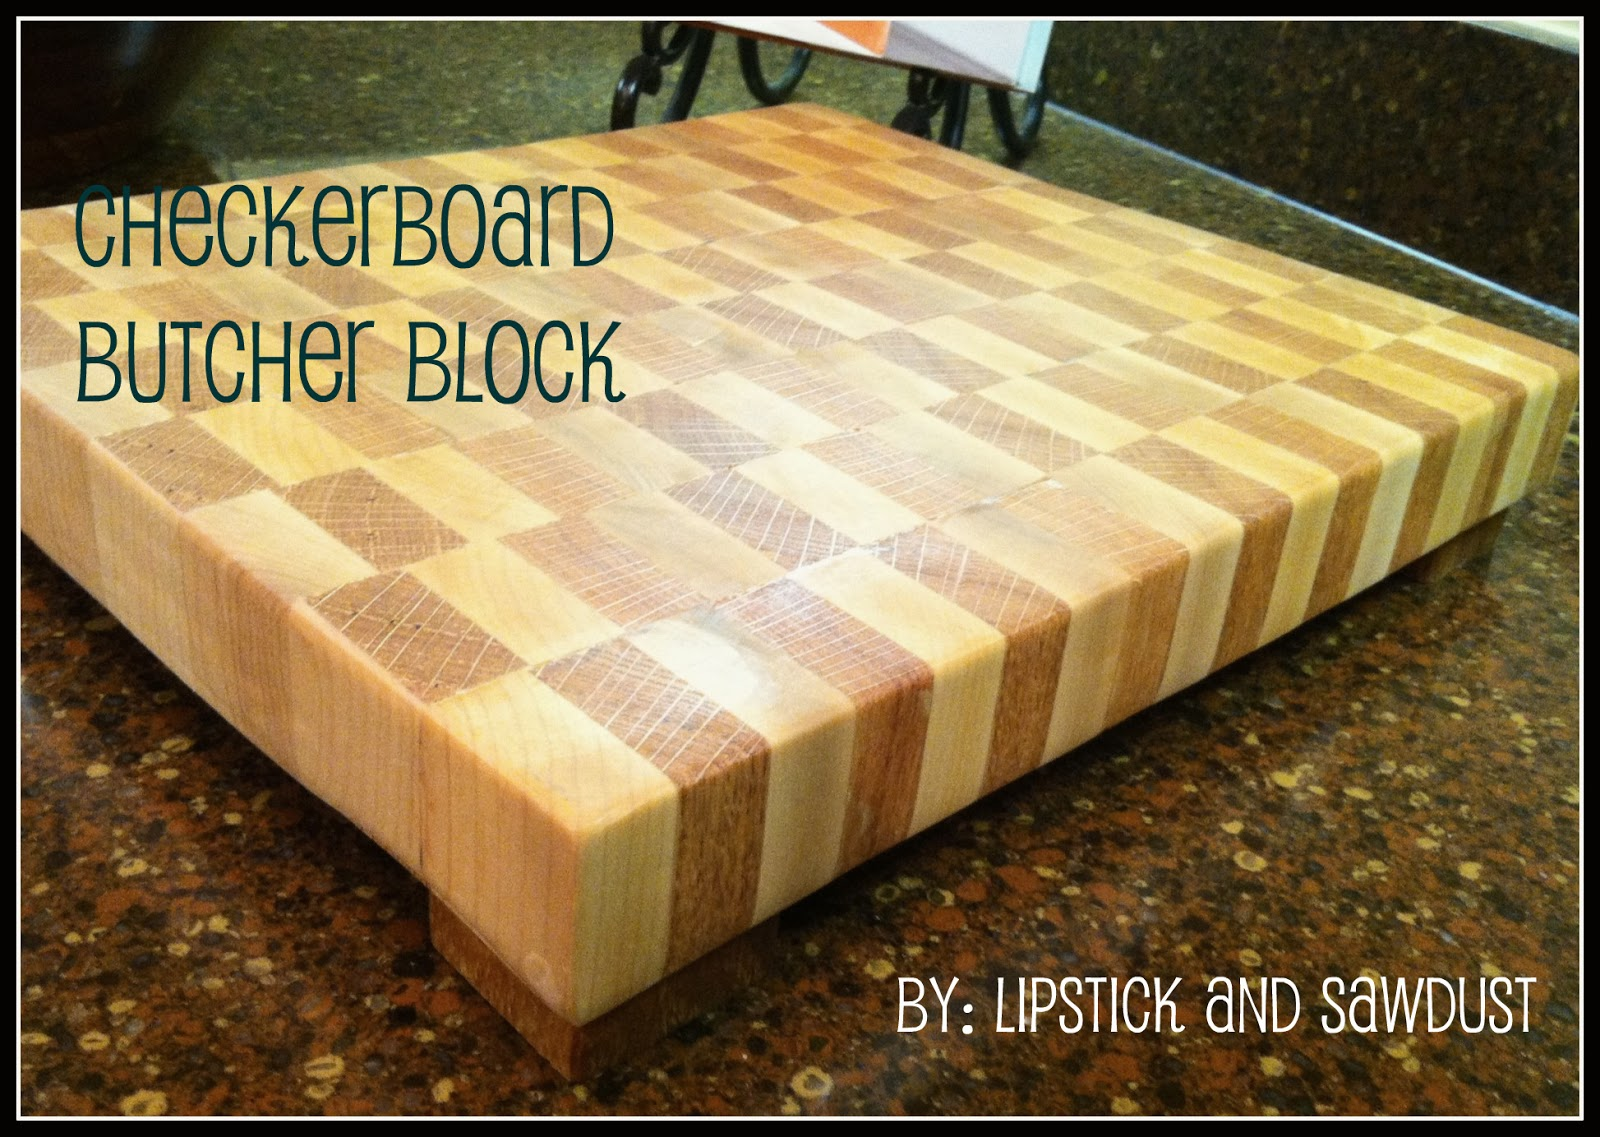 Checkerboard Butcher Block Tutorial